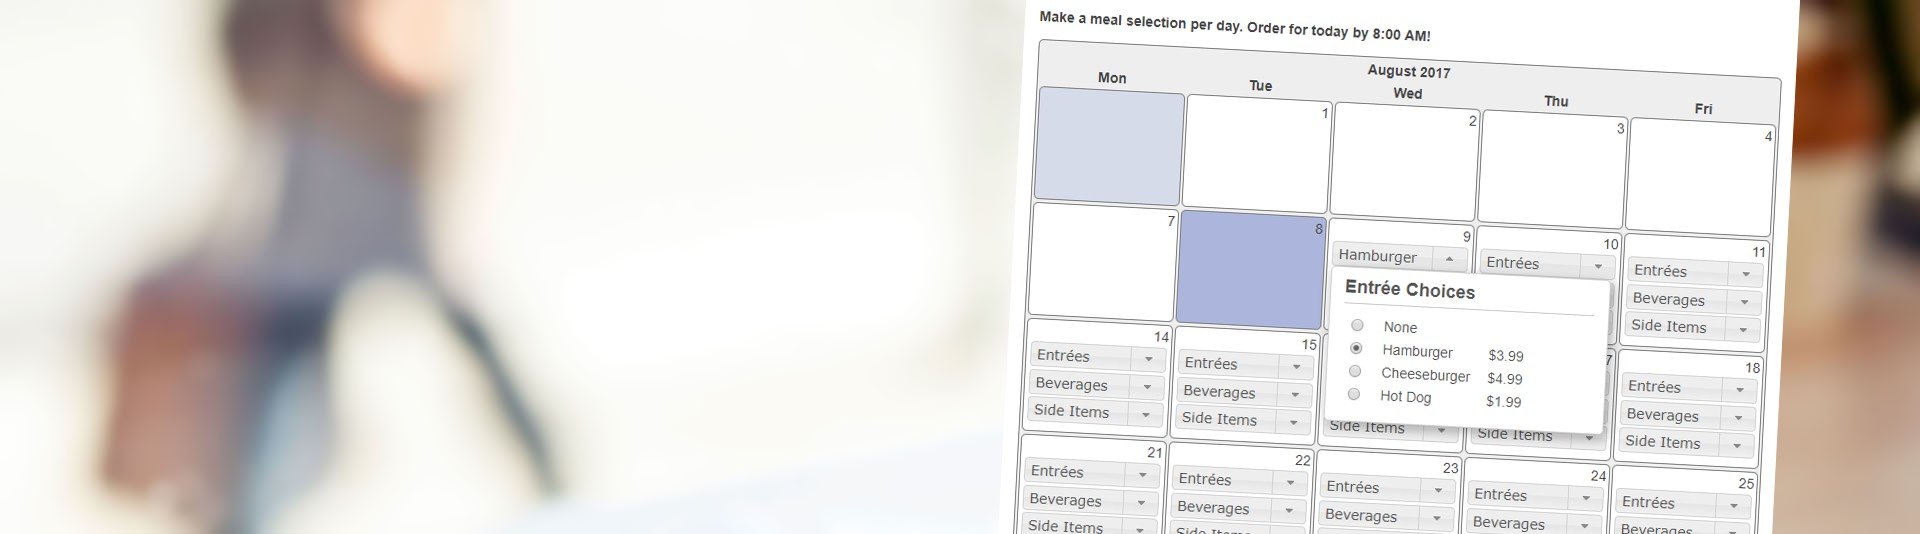 Meal Site Calendar-Based School Lunch Ordering System